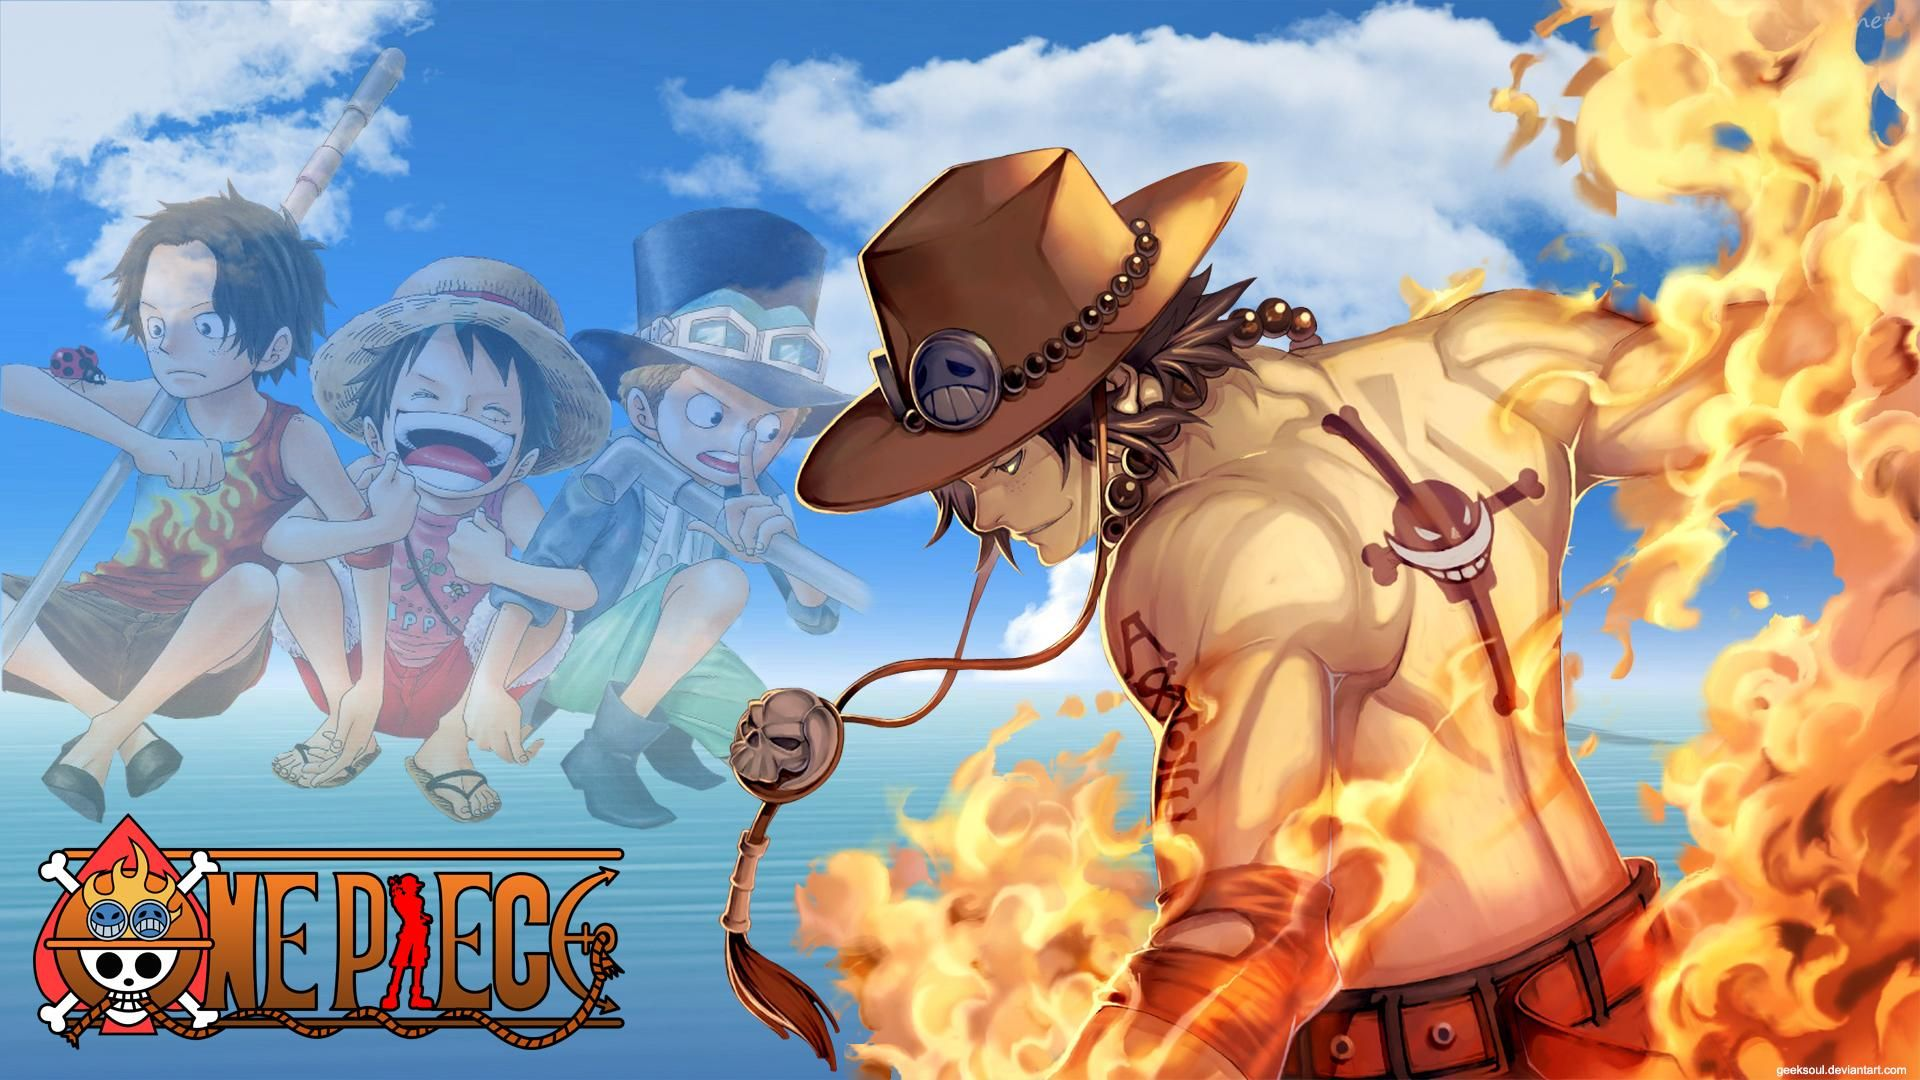 One Piece Ace Wallpapers Wallpaper Cave One Piece Ace Anime Ace And Luffy